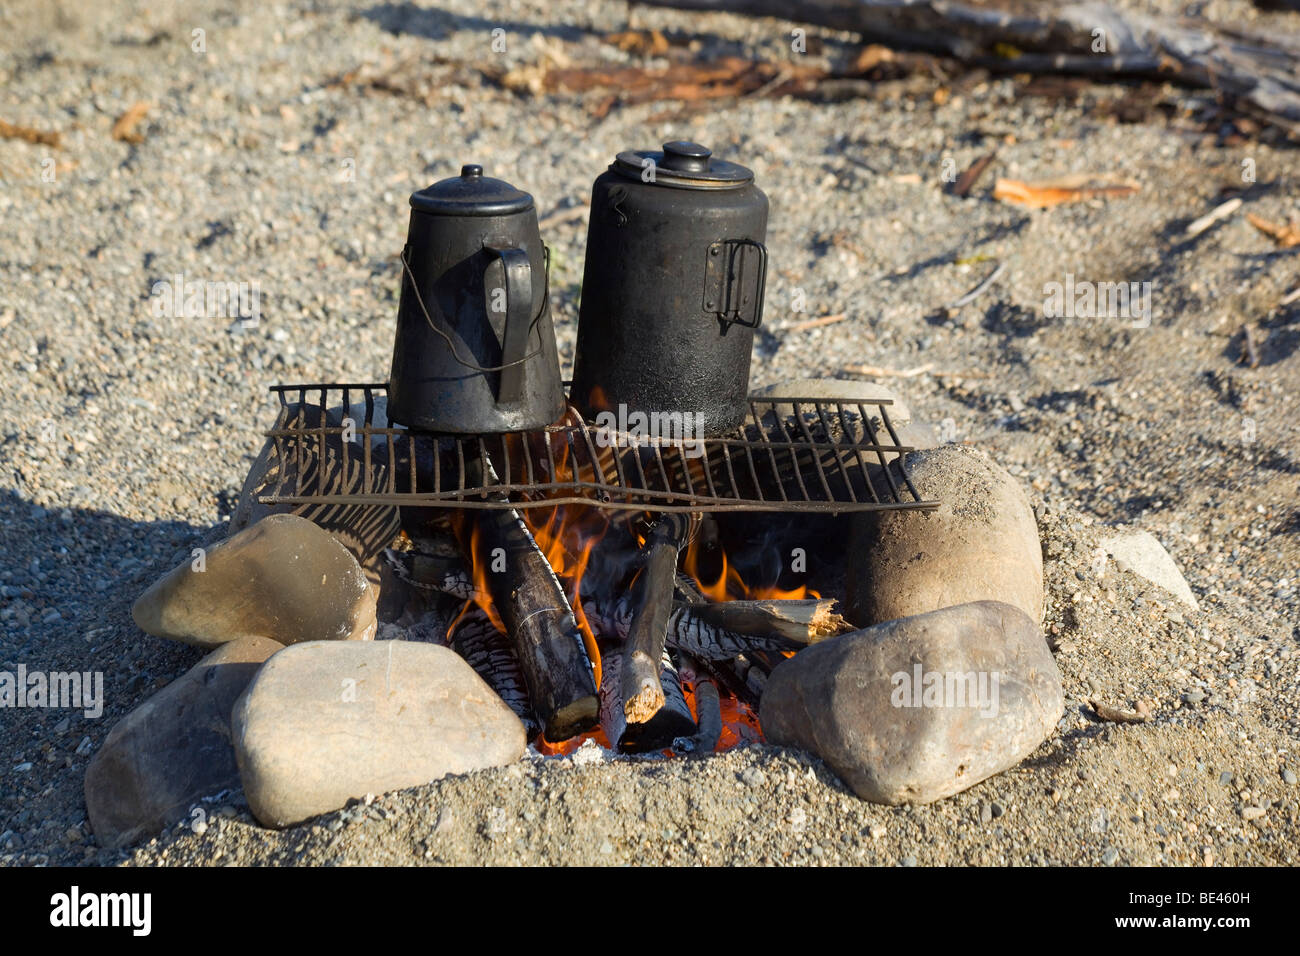 Two kettles on a camp fire, grill, black from soot, tea and coffee, upper Liard River, Yukon Territory, Canada - Stock Image